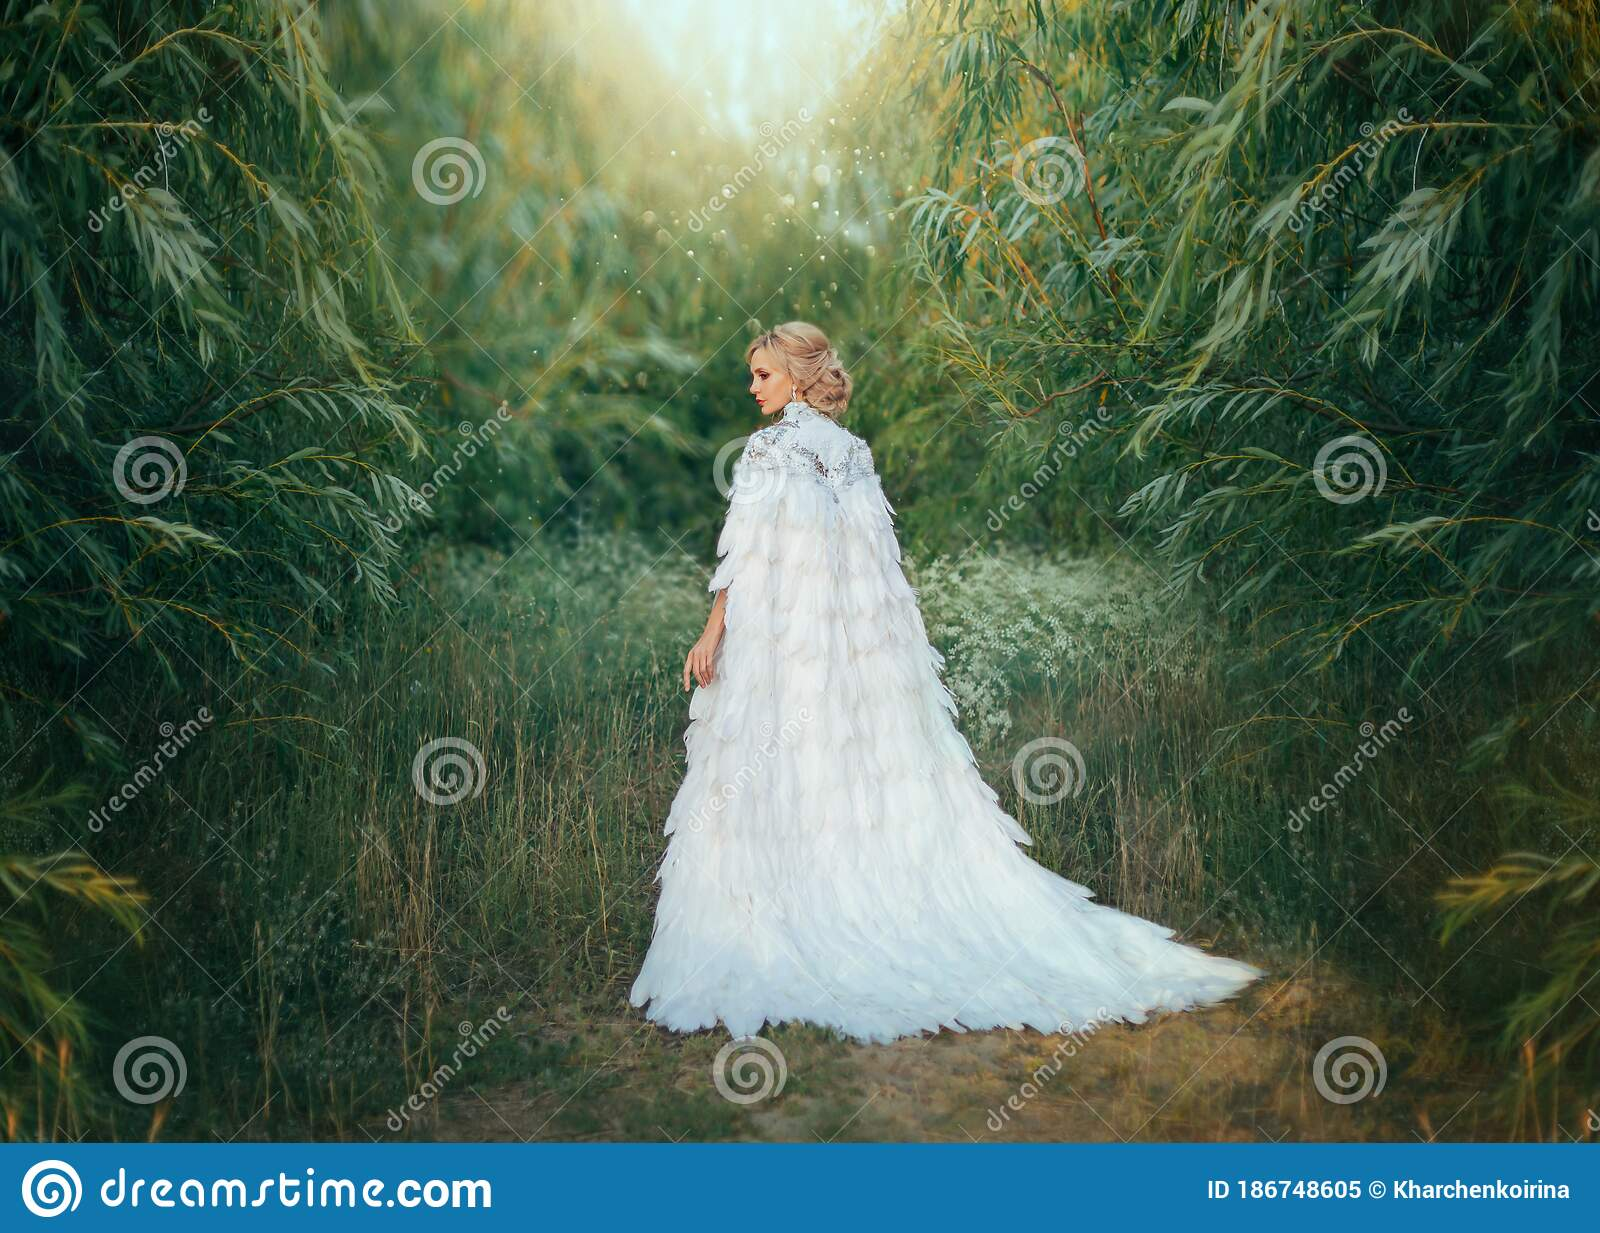 Fantasy Woman Queen In White Medieval Dress With Feathers Creative Clothes Long Cape Royal Vintage Cloak With Train Stock Image Image Of Back Angel 186748605